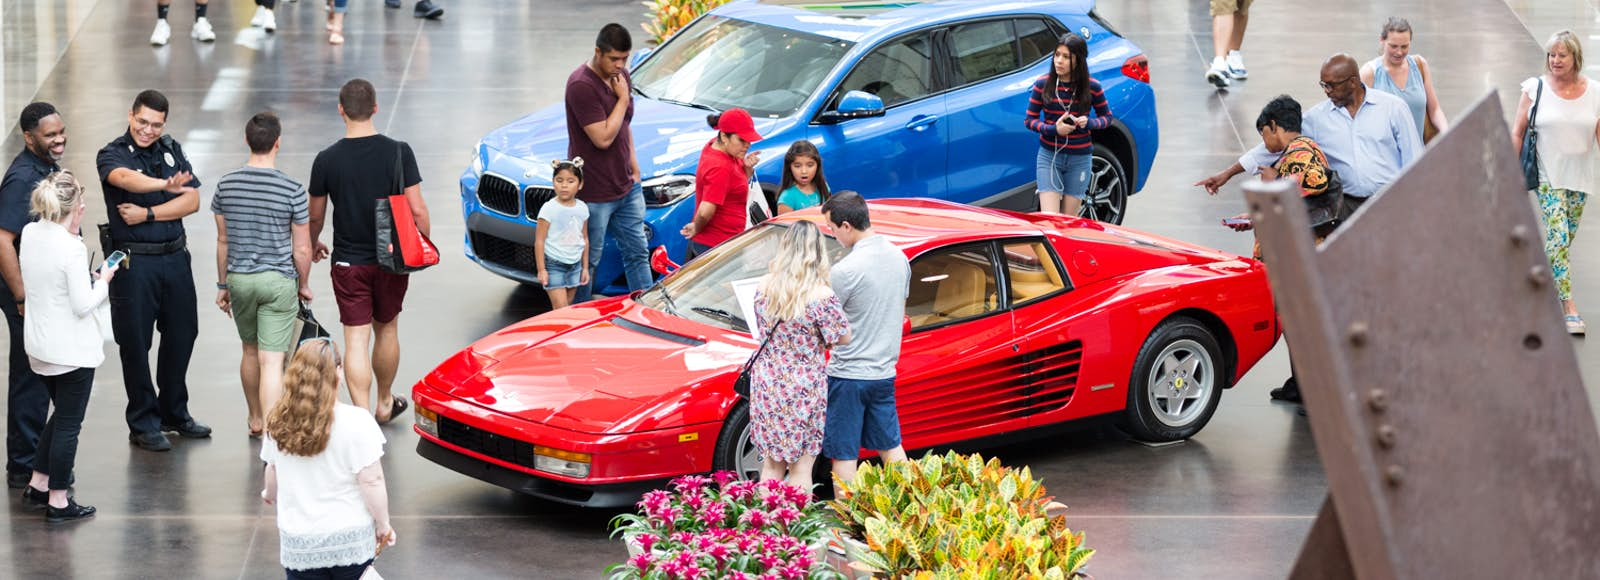 Auto Shows And Auctions In Dallas - Dallas car show